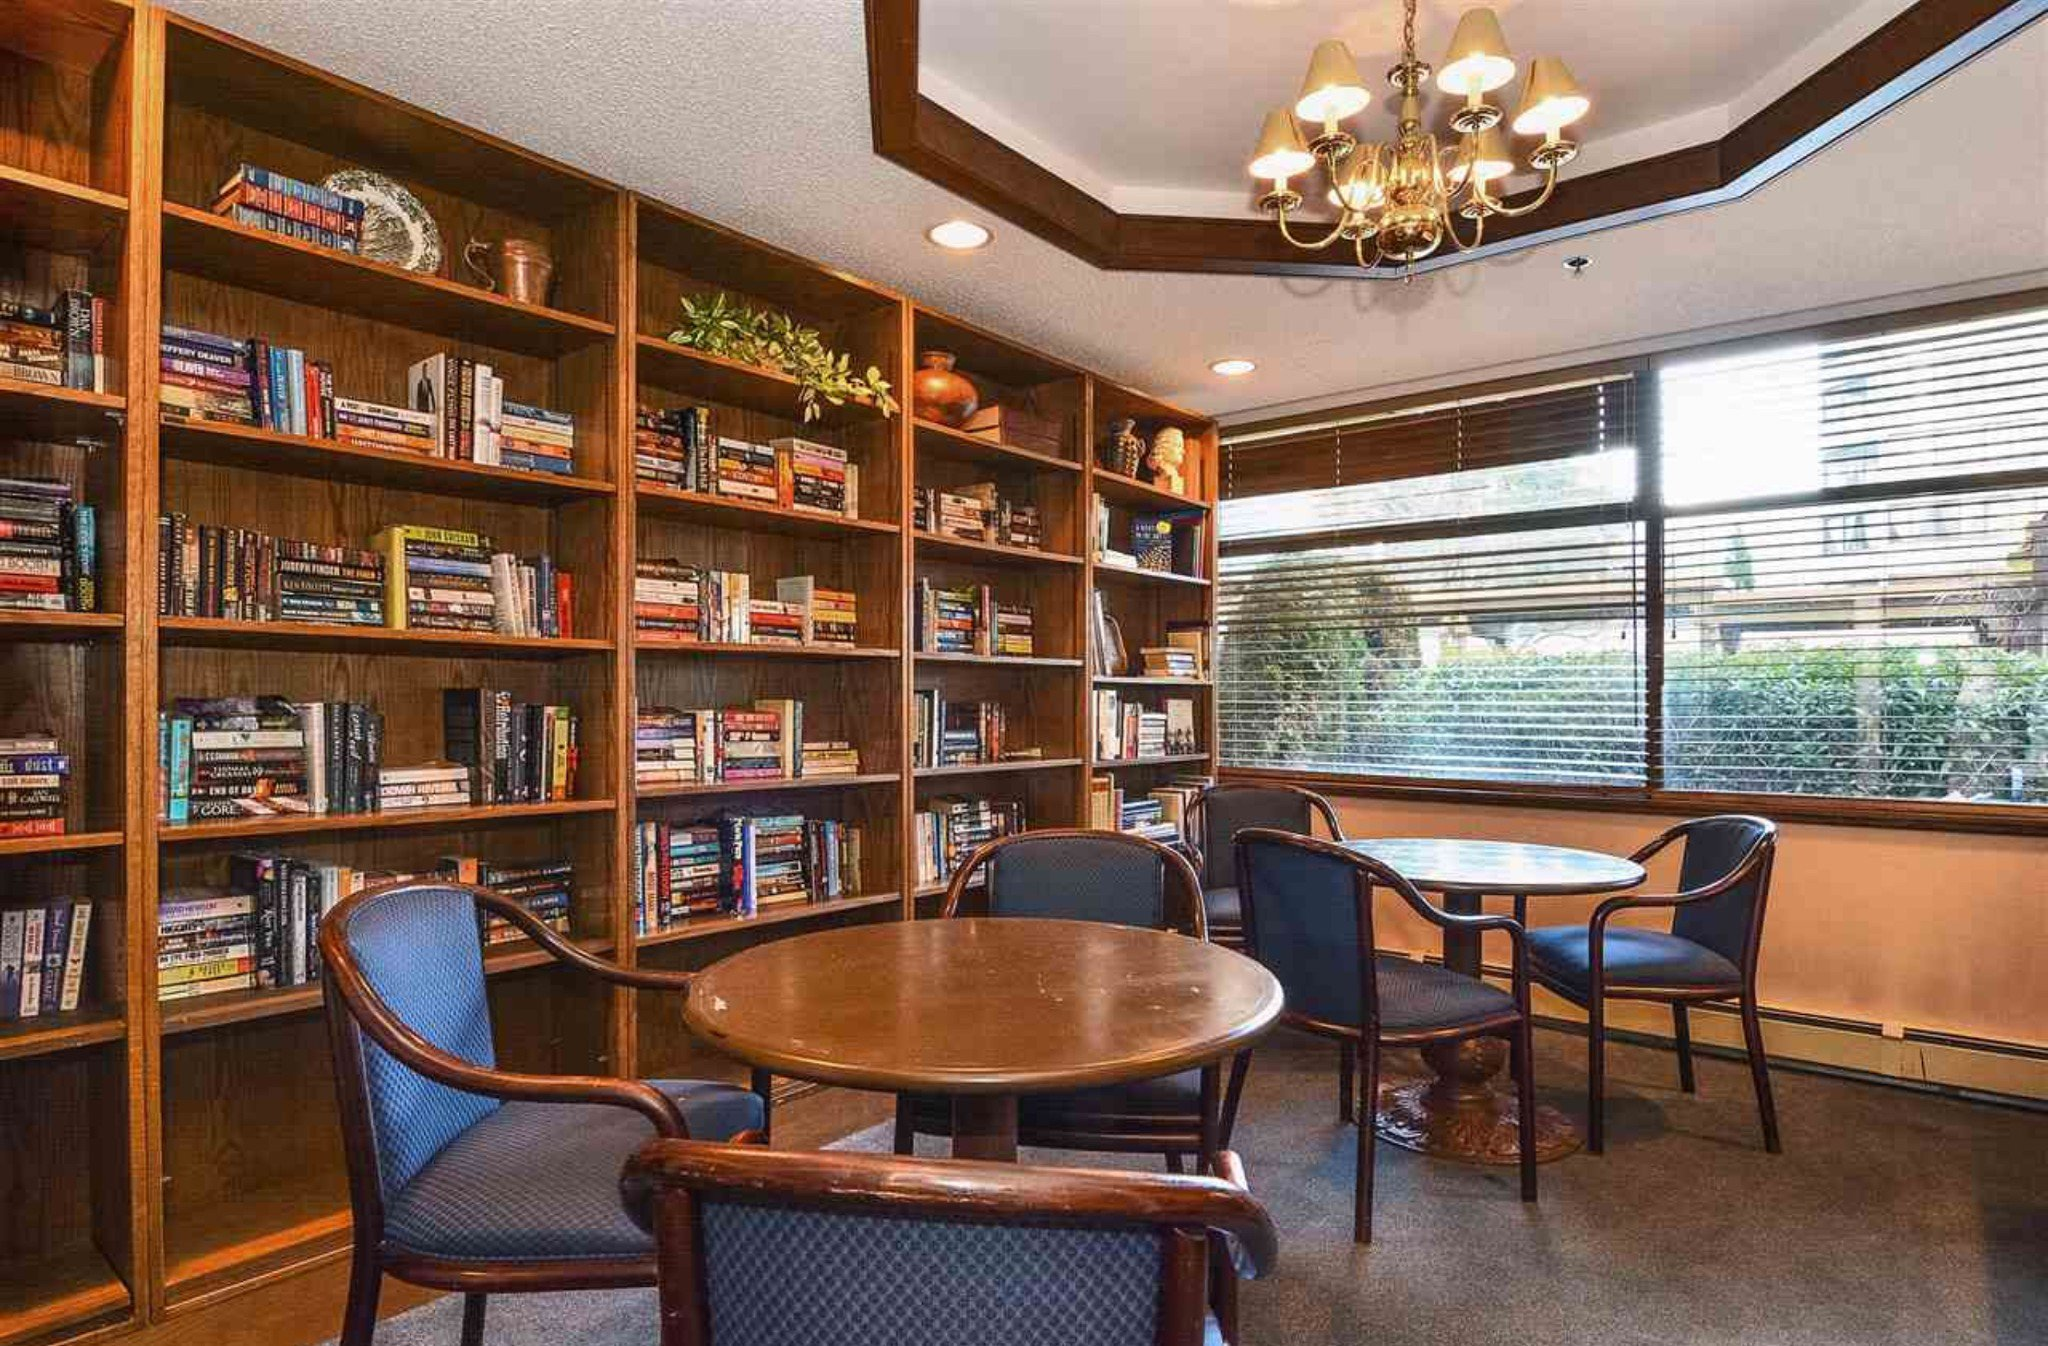 Photo 18: Photos: 405, 15111 Russell Avenue: White Rock Condo for sale (South Surrey White Rock)  : MLS®# R2133728